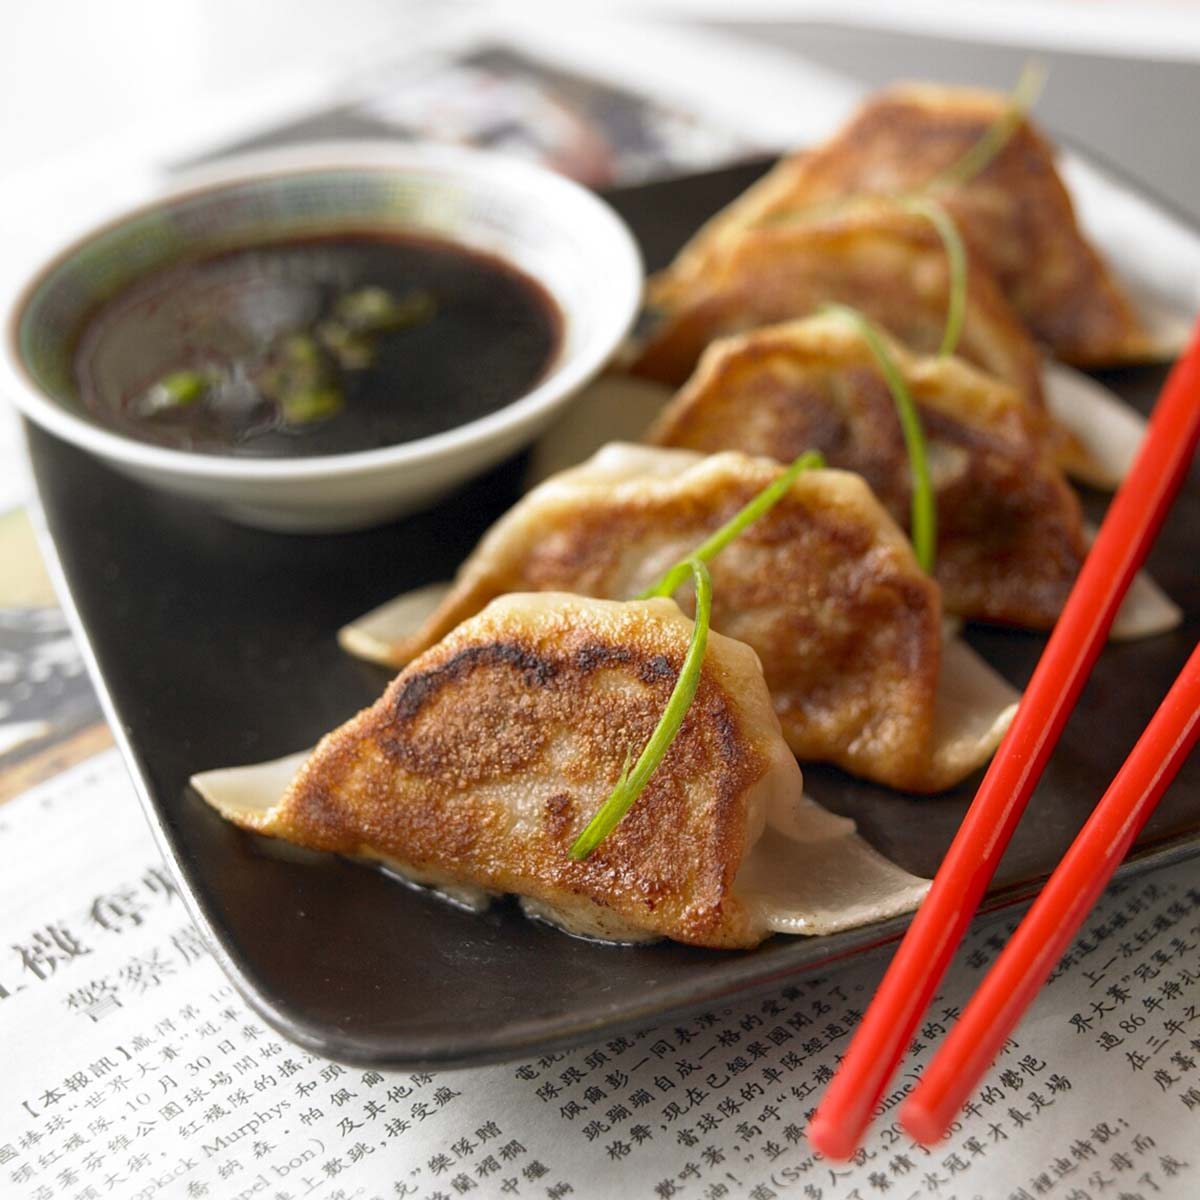 myers-and-chang-best-restaurants-in-boston-2015